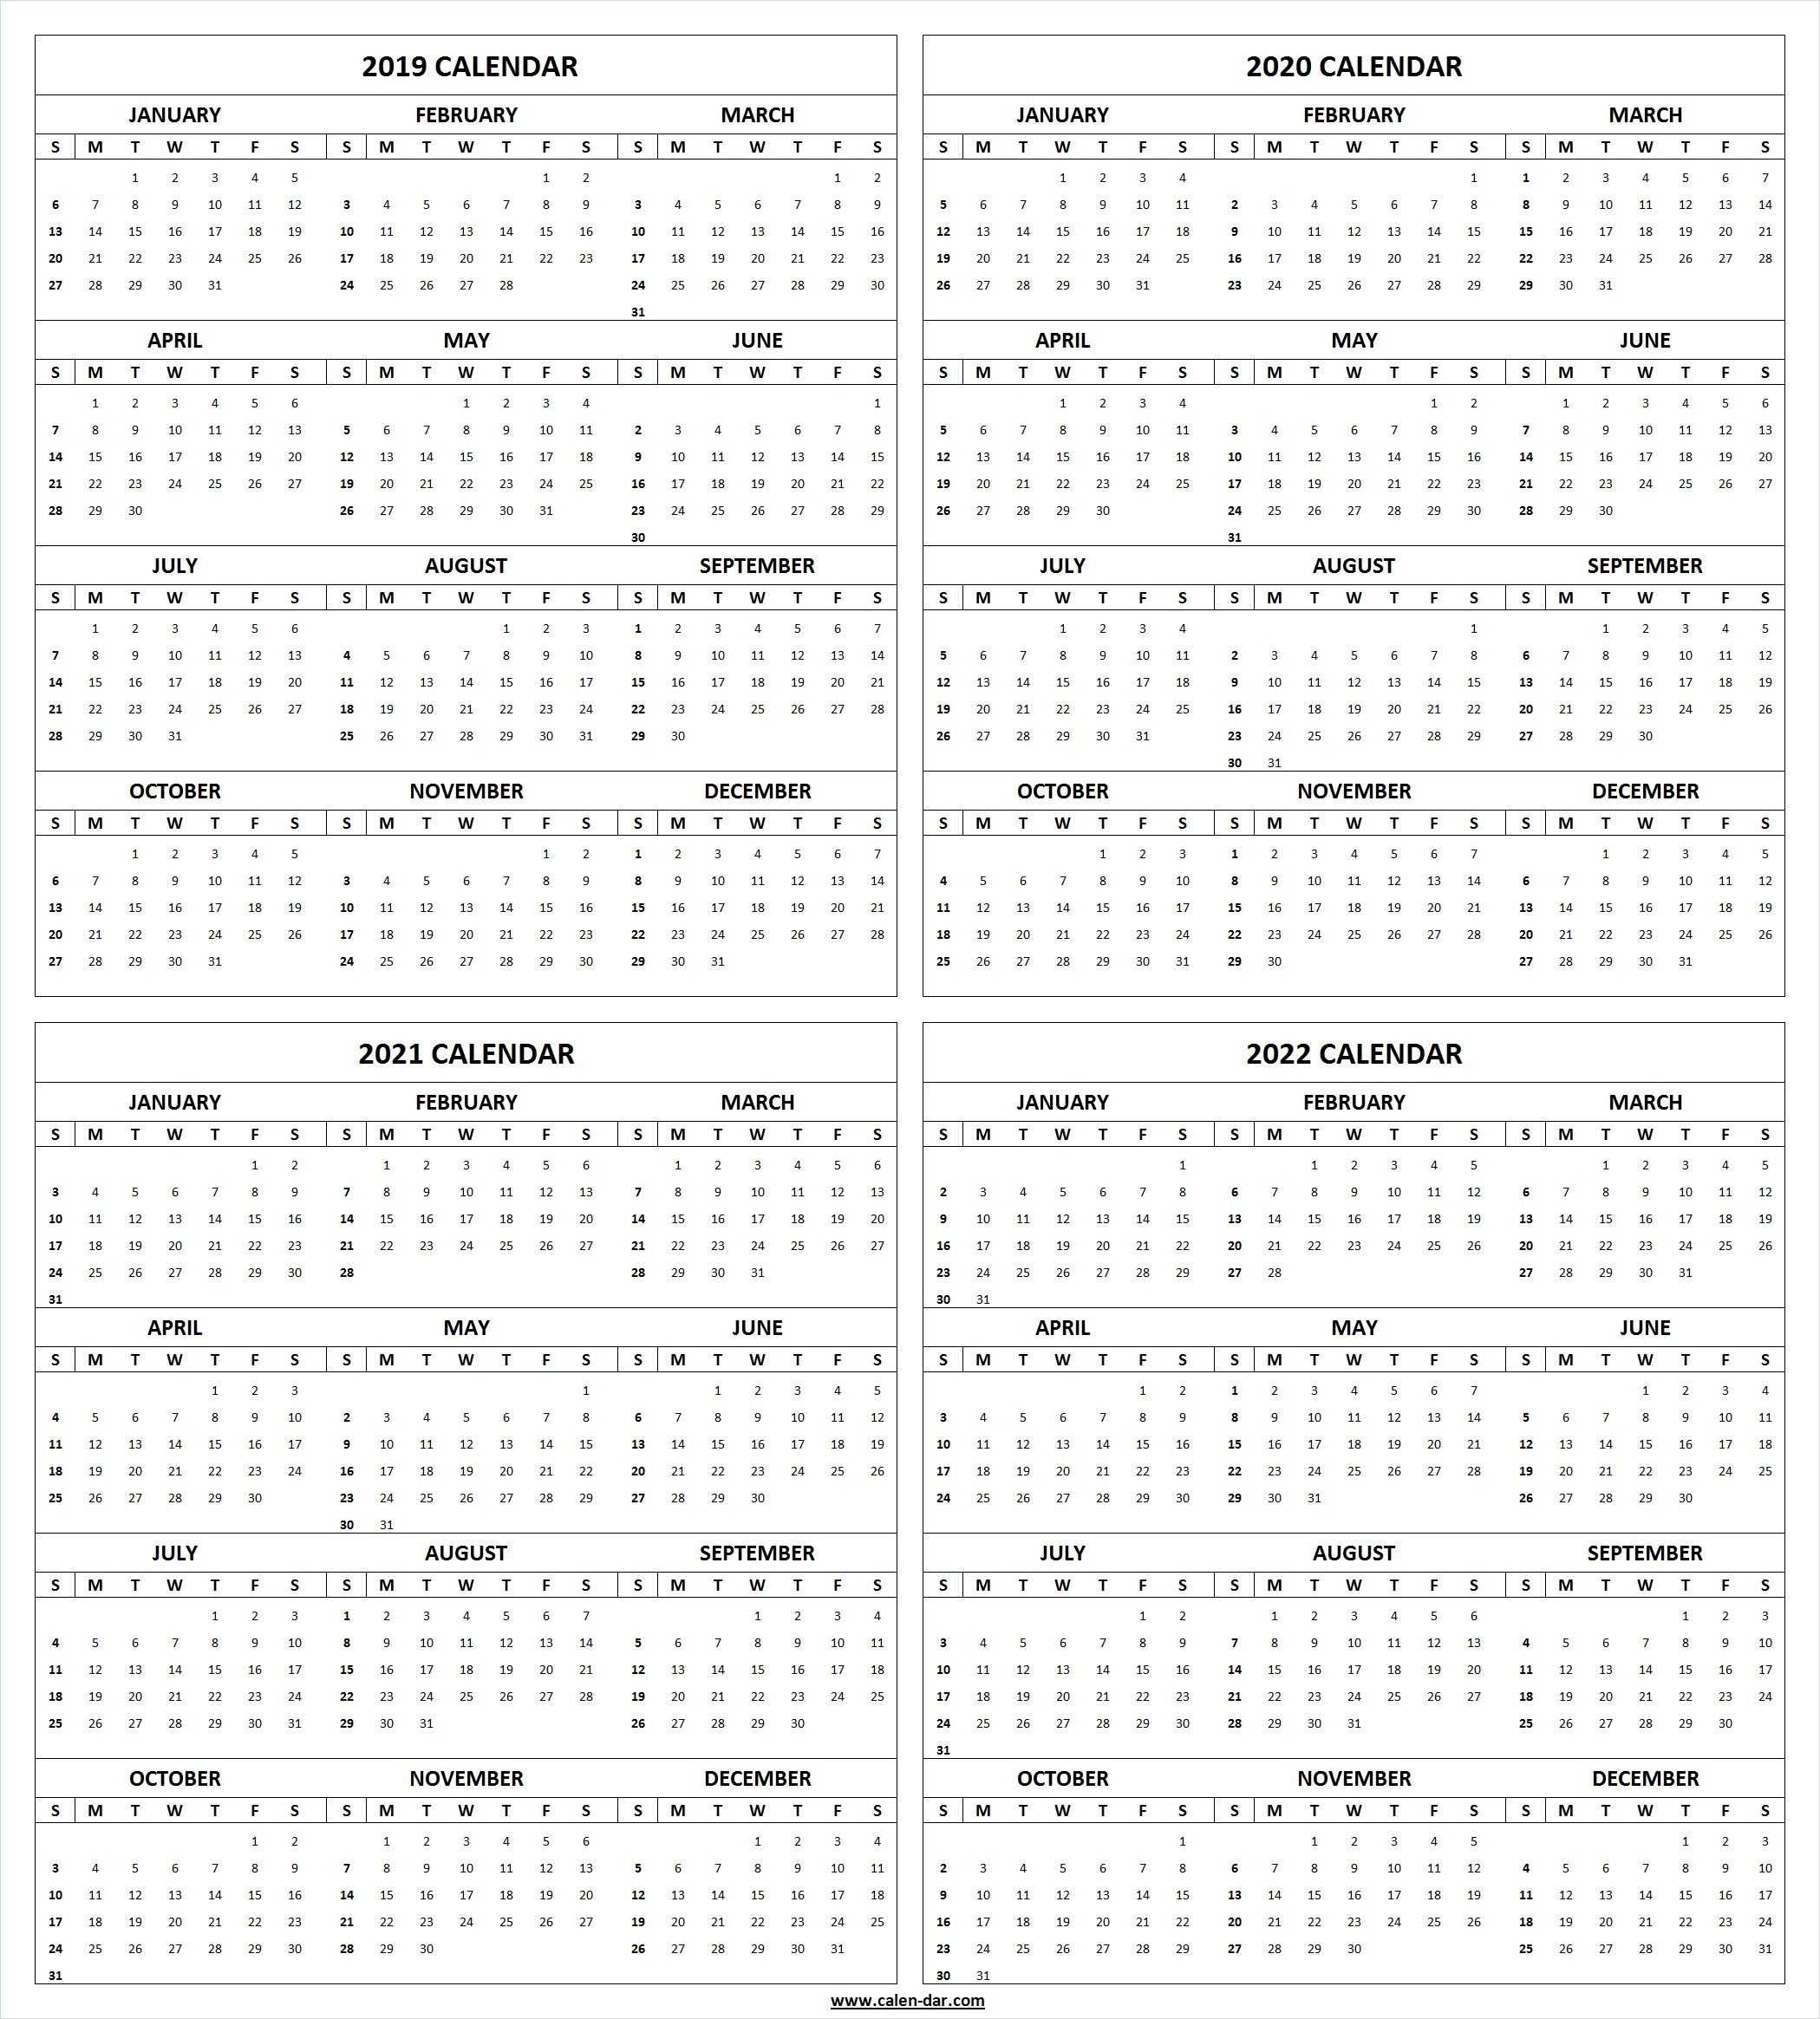 Get Free Blank Printable 2019 2020 2021 2022 Calendar pertaining to 2019 2020 2021 2022 Calendars